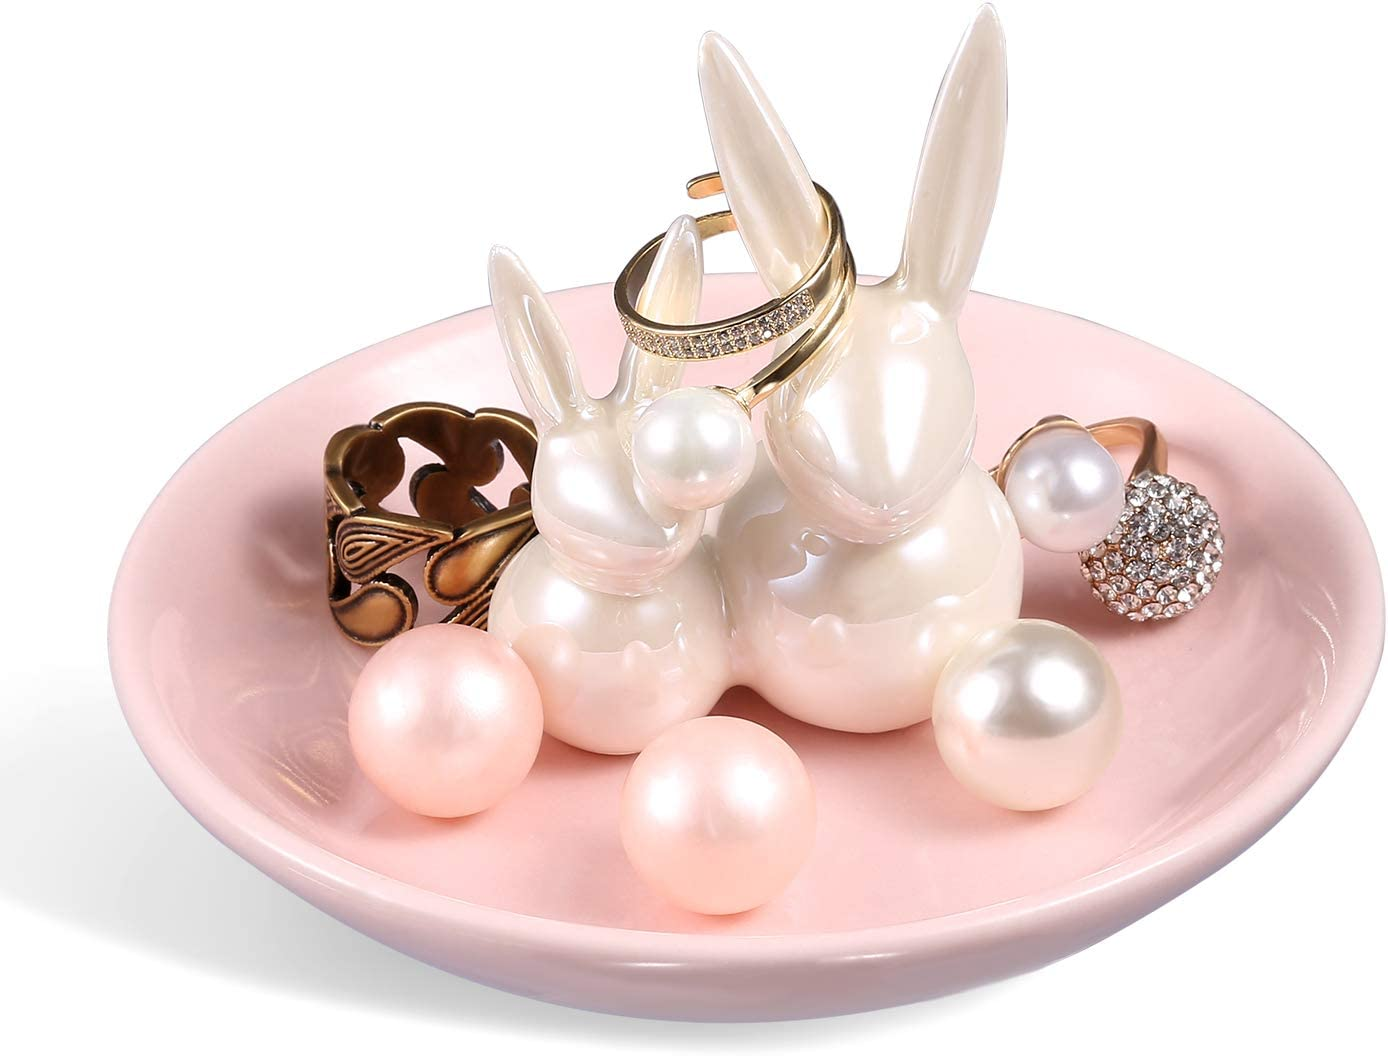 ROSA&ROSE Cute Pair Rabbits Ring Holder Ceramic Dish Jewelry Tray Trinket Kitty Table Decor Stand Valentine Gift for Mom (Pearl White)